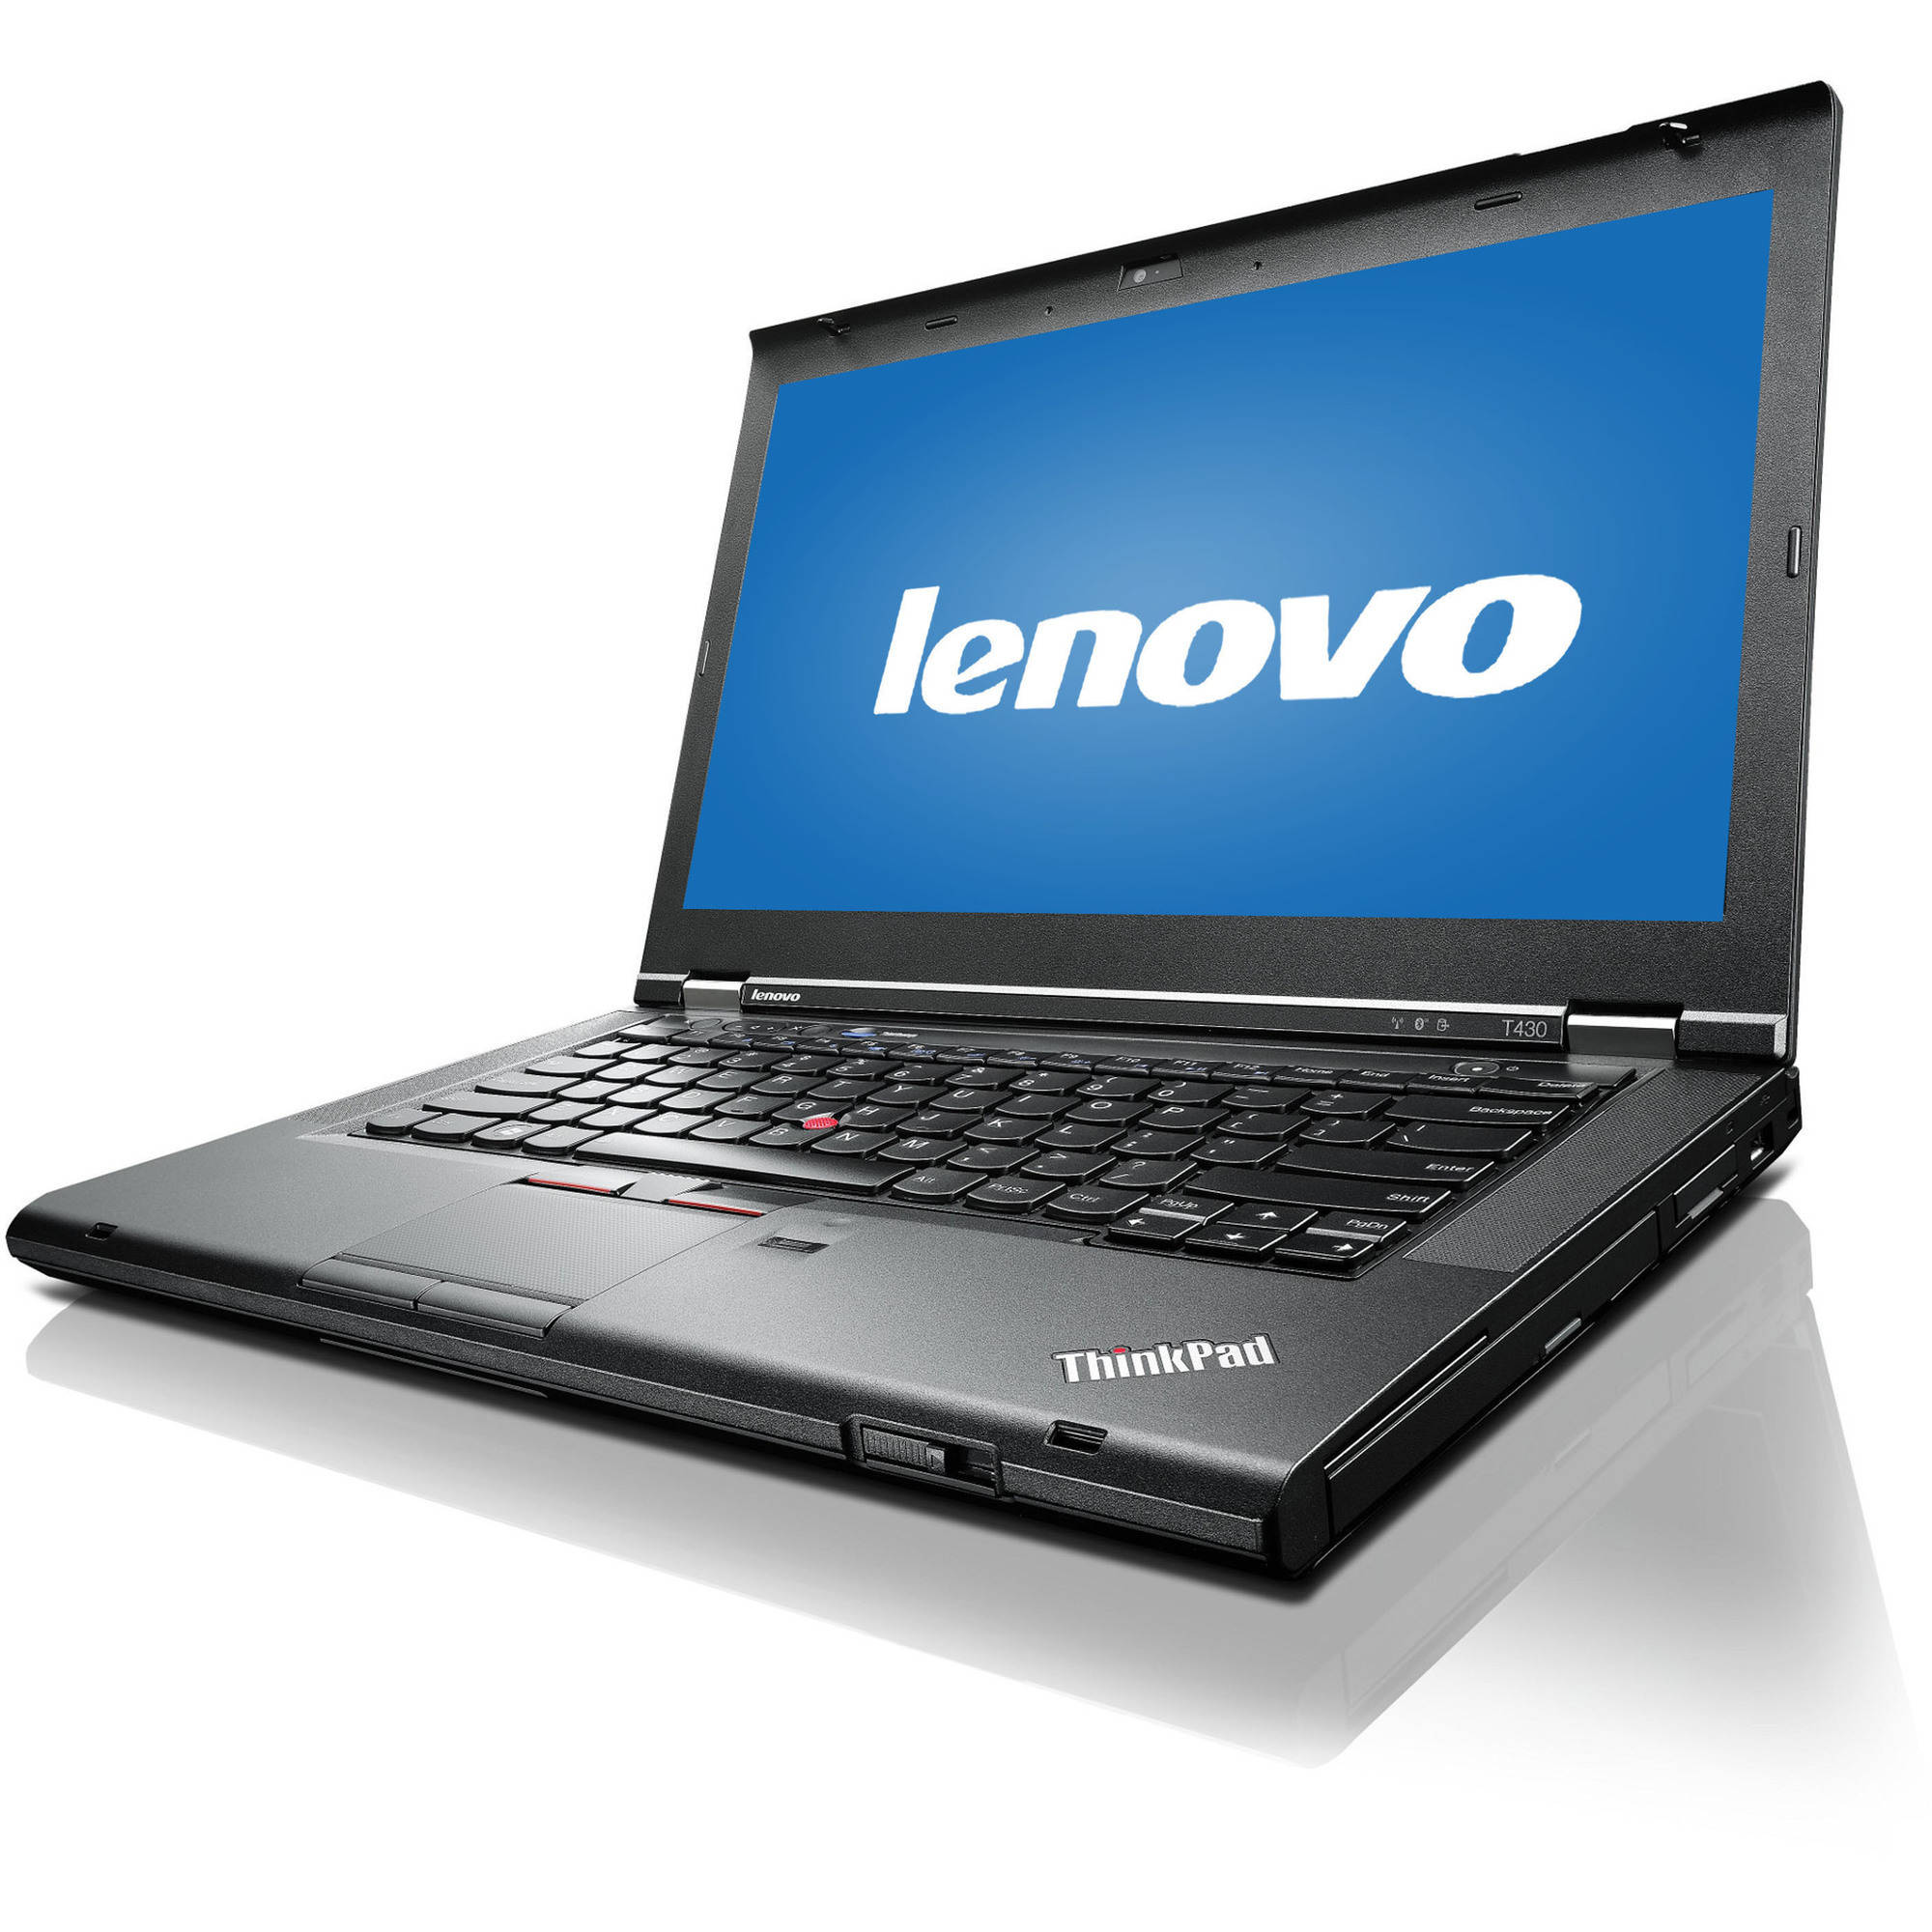 Refurbished Lenovo ThinkPad T430 14 Laptop, Windows 10 Pro, Intel Core i5 - 3210M Processor, 4GB RAM, 500GB Hard Drive